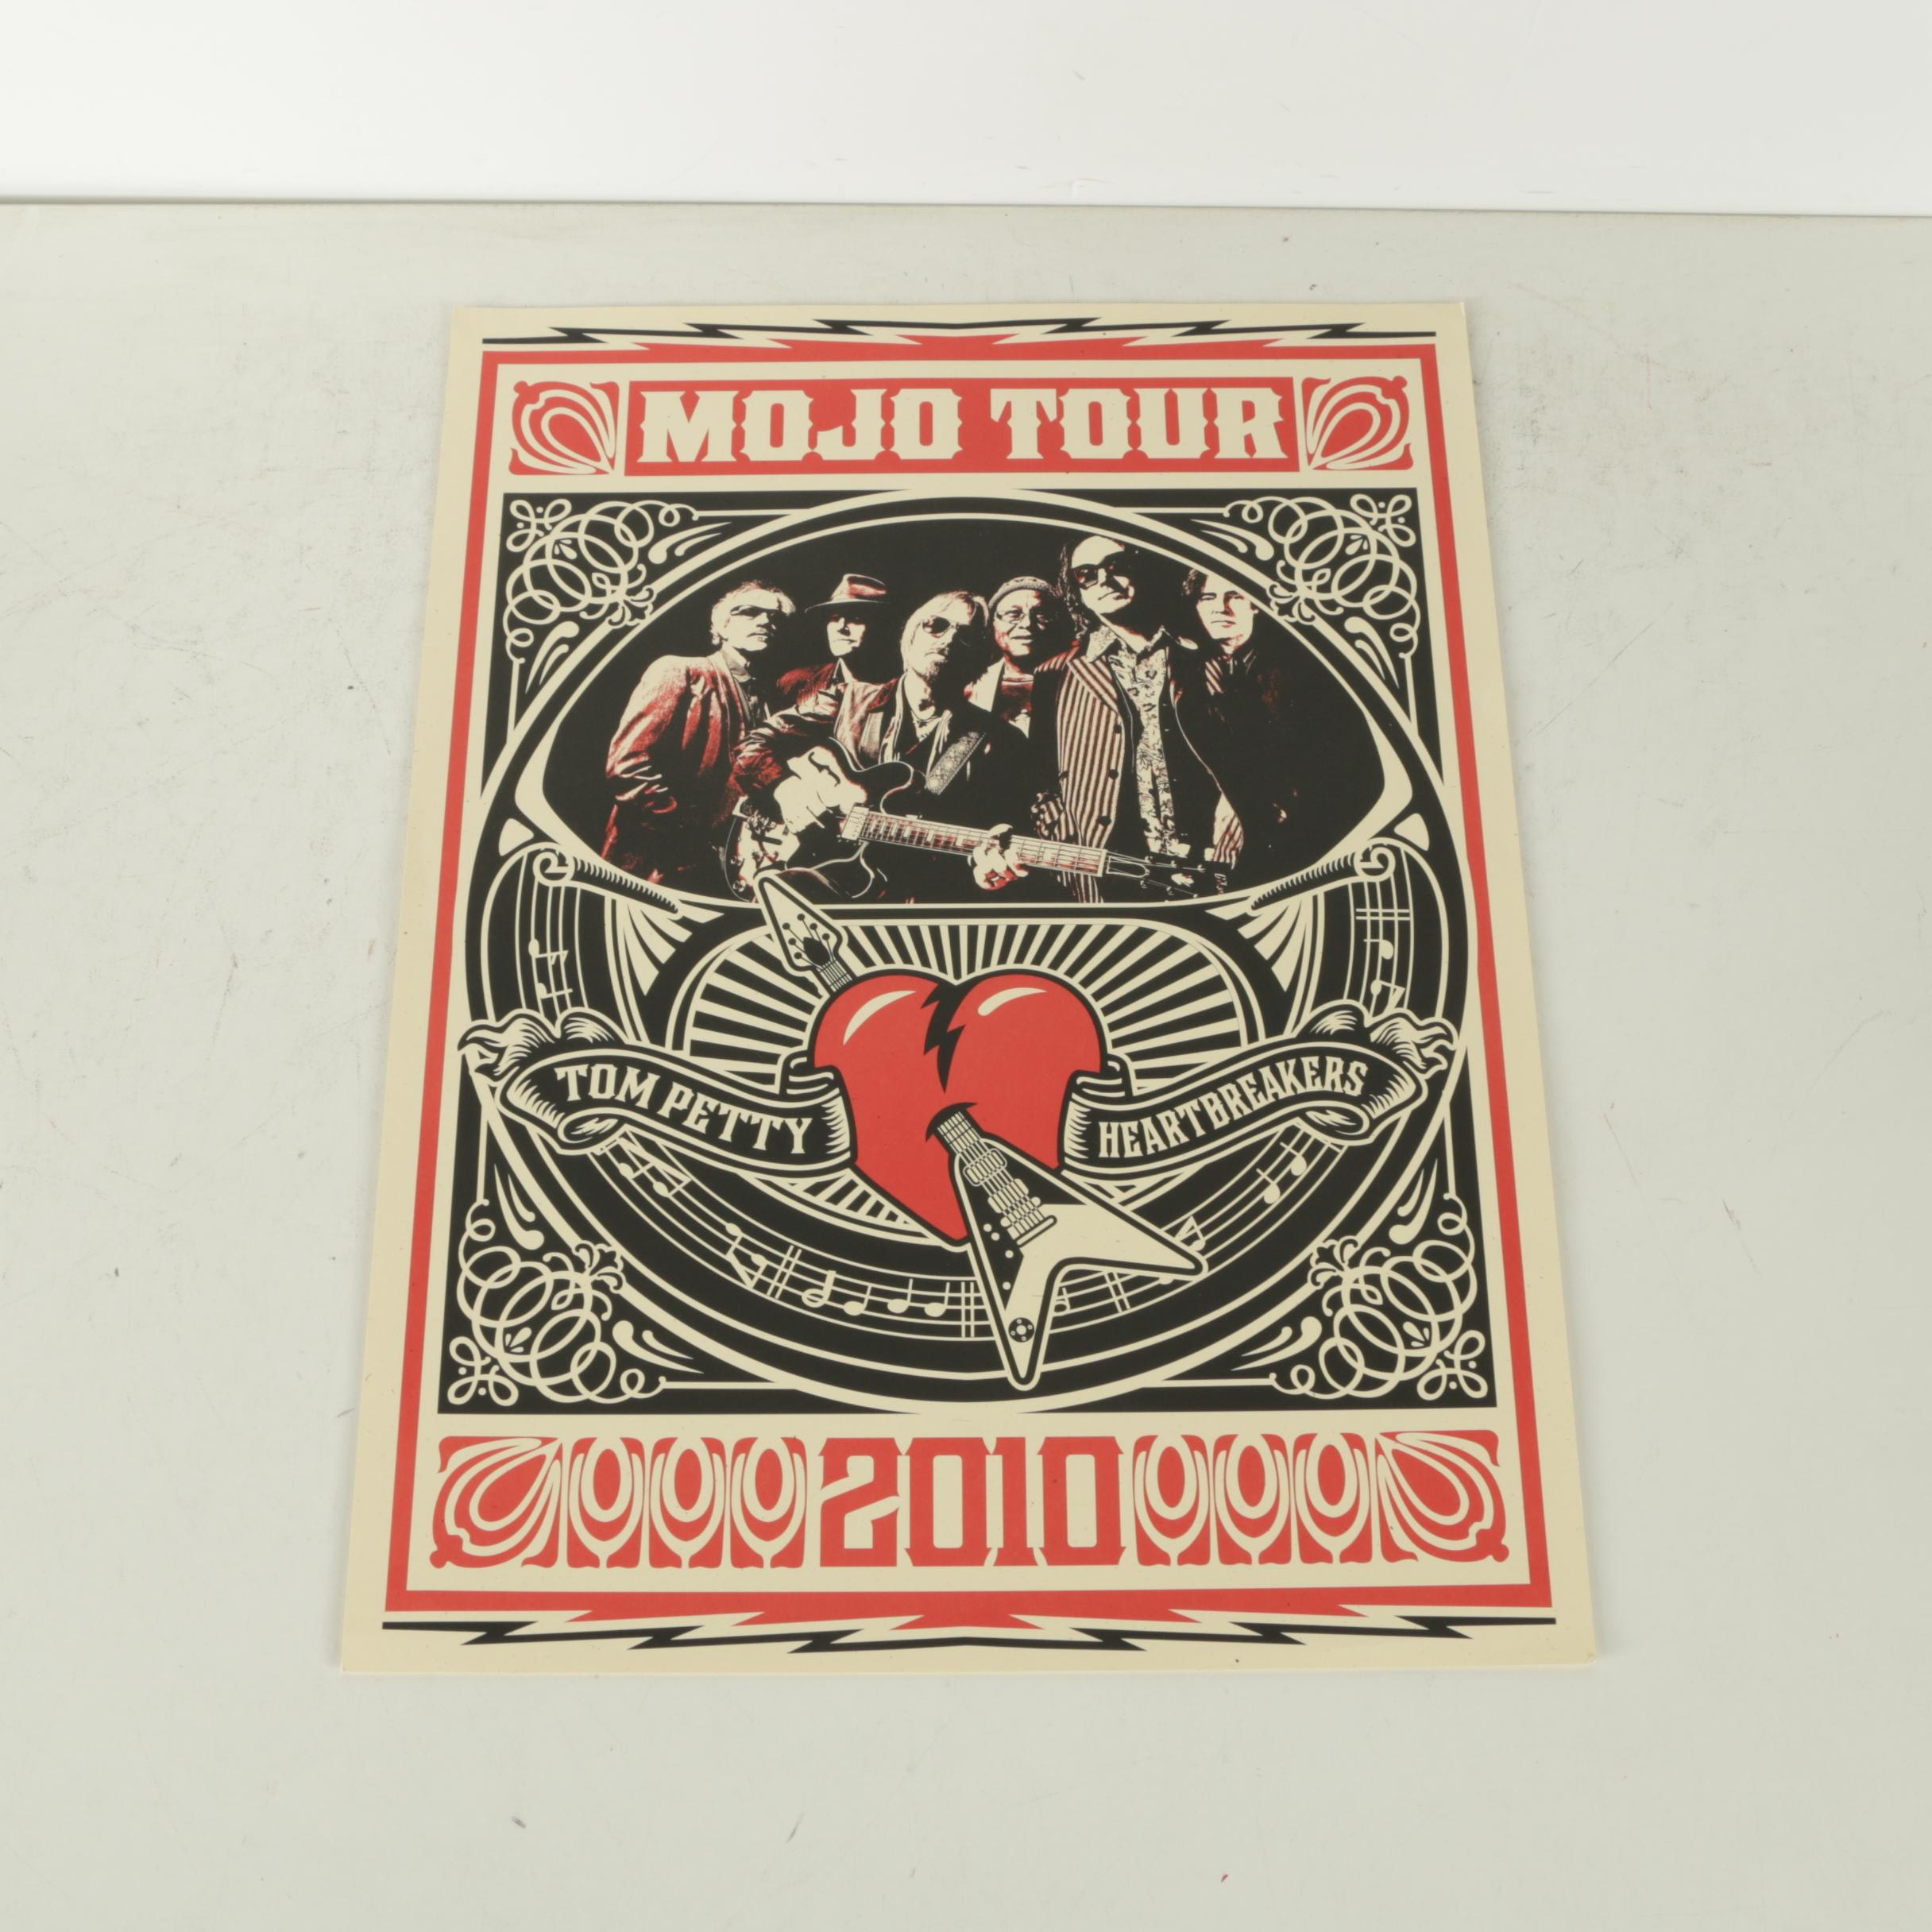 Tom Petty and the Heartbreakers 2010 Mojo Tour Poster